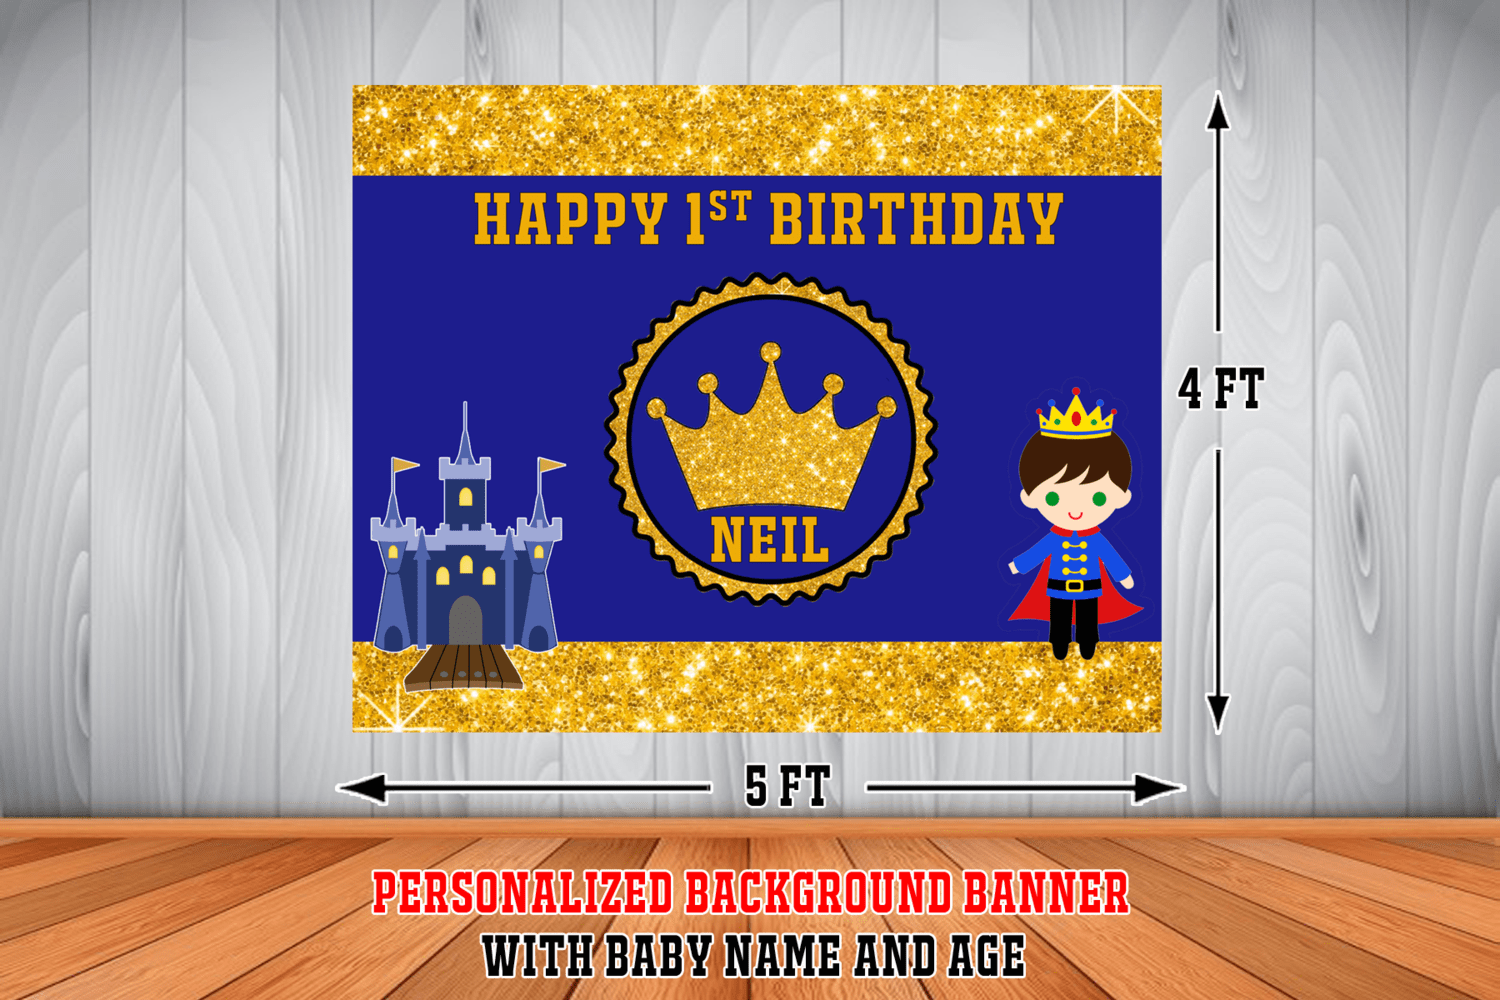 personalized royal prince birthday background banner 2 4ft x 5ft